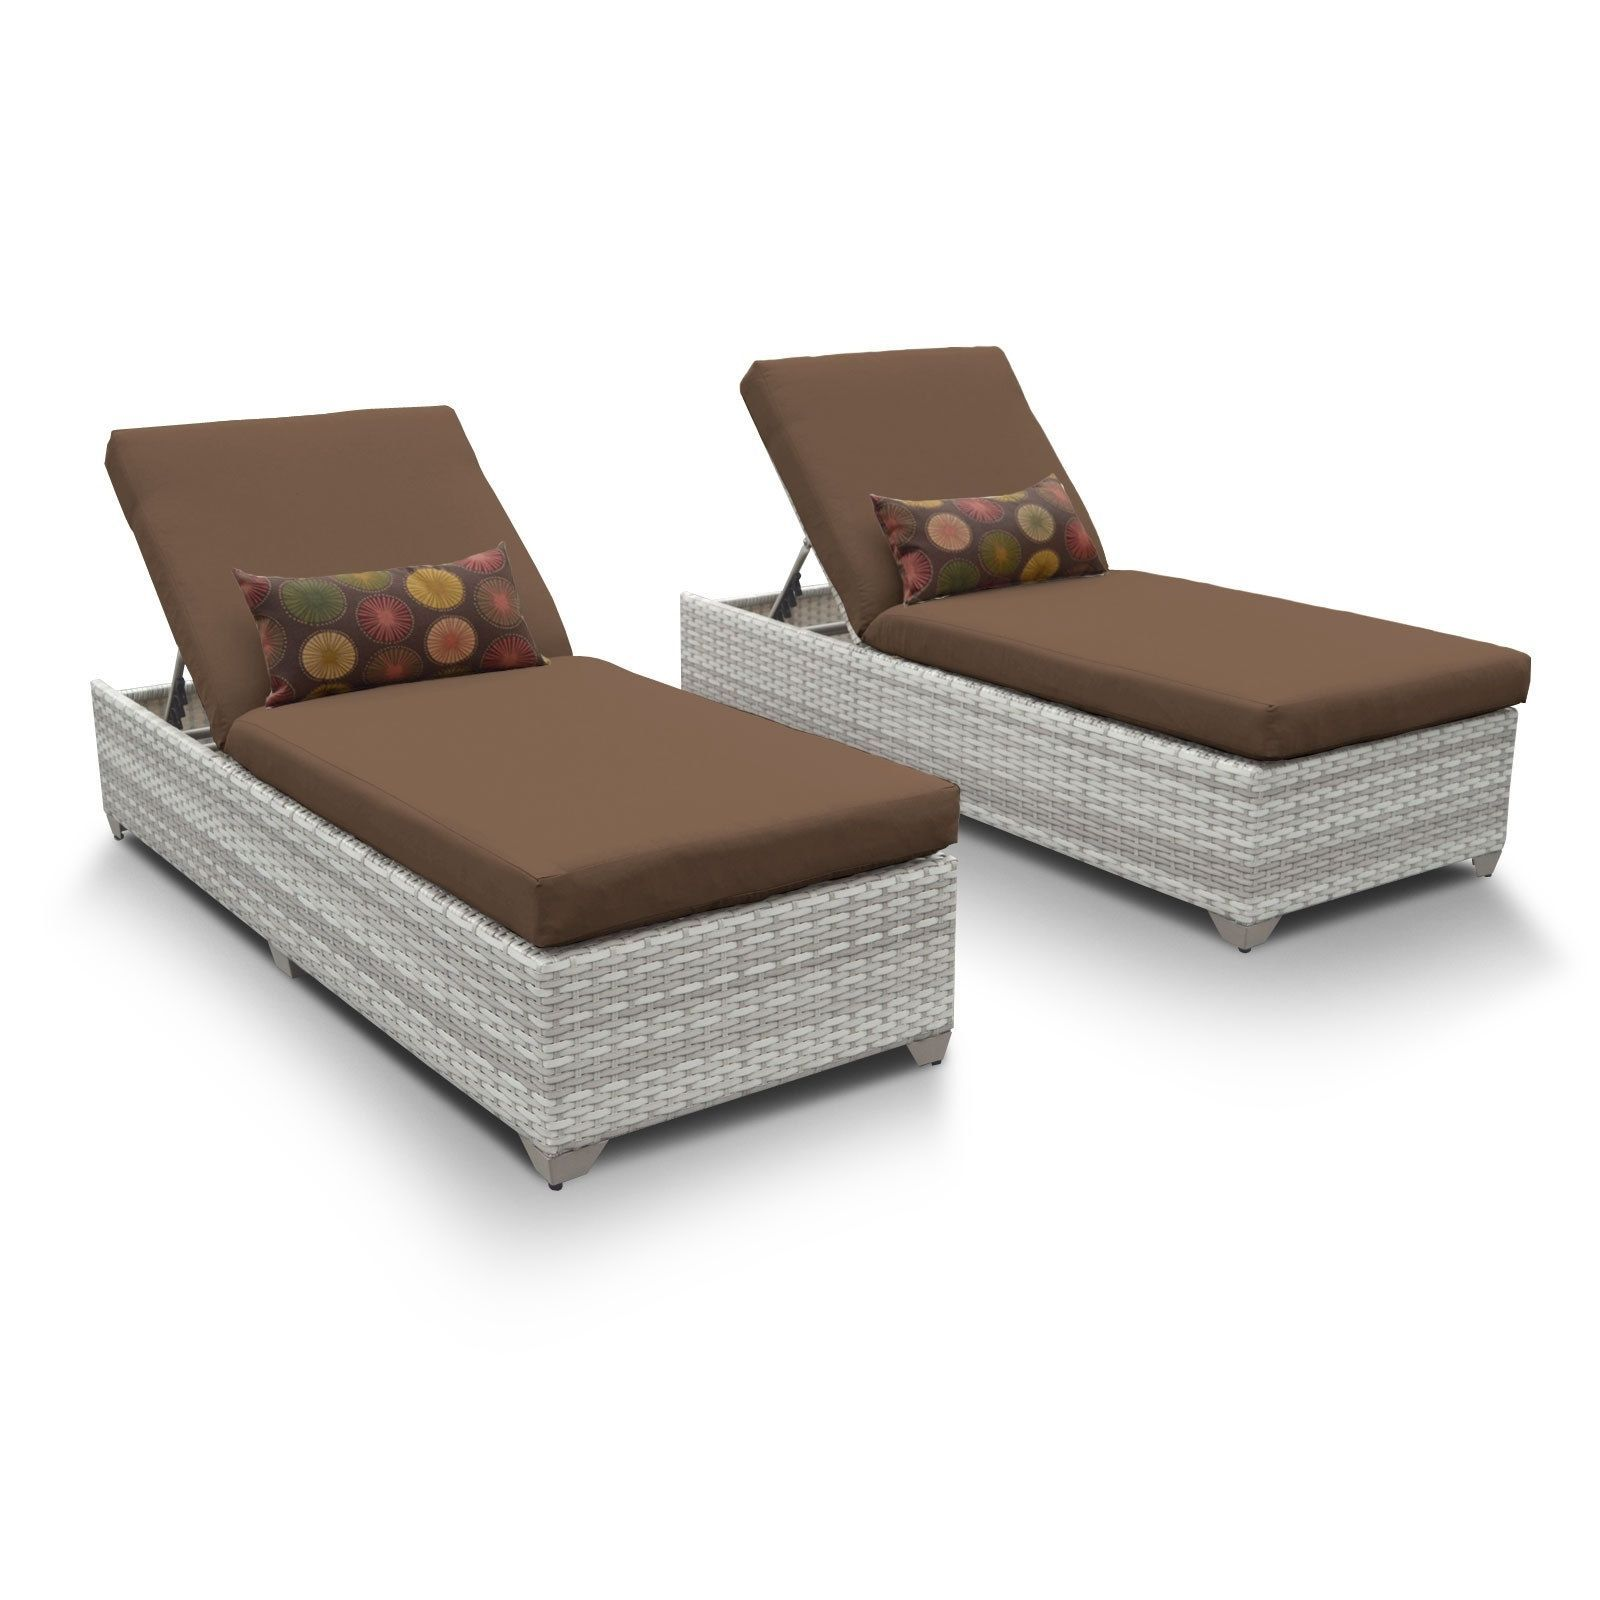 acrylic outdoor furniture. Outdoor Home Catamaran Wicker Patio Chaise Lounge (Set Of 2) (Green), Furniture (Acrylic) Acrylic